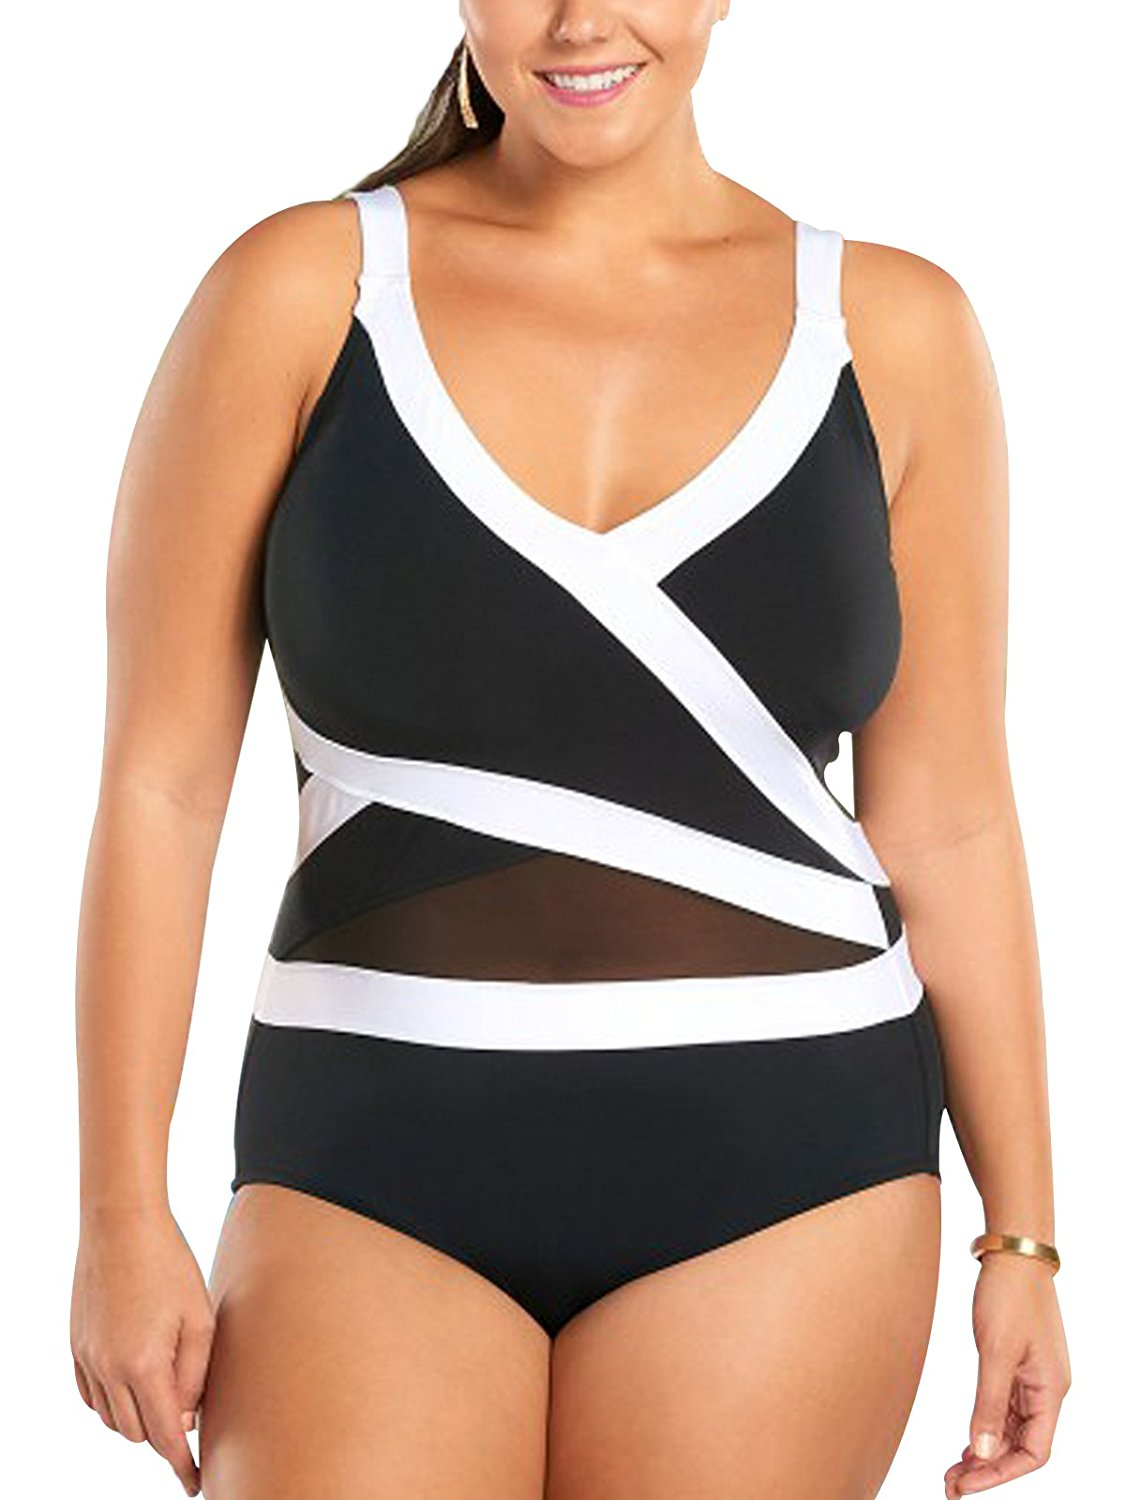 0126d1efcd1 Get Quotations · Zando Womens One Piece Bathing Suits Tummy Control Swimwear  Halter Swimsuits Mesh Colorblock Swimming Suits for